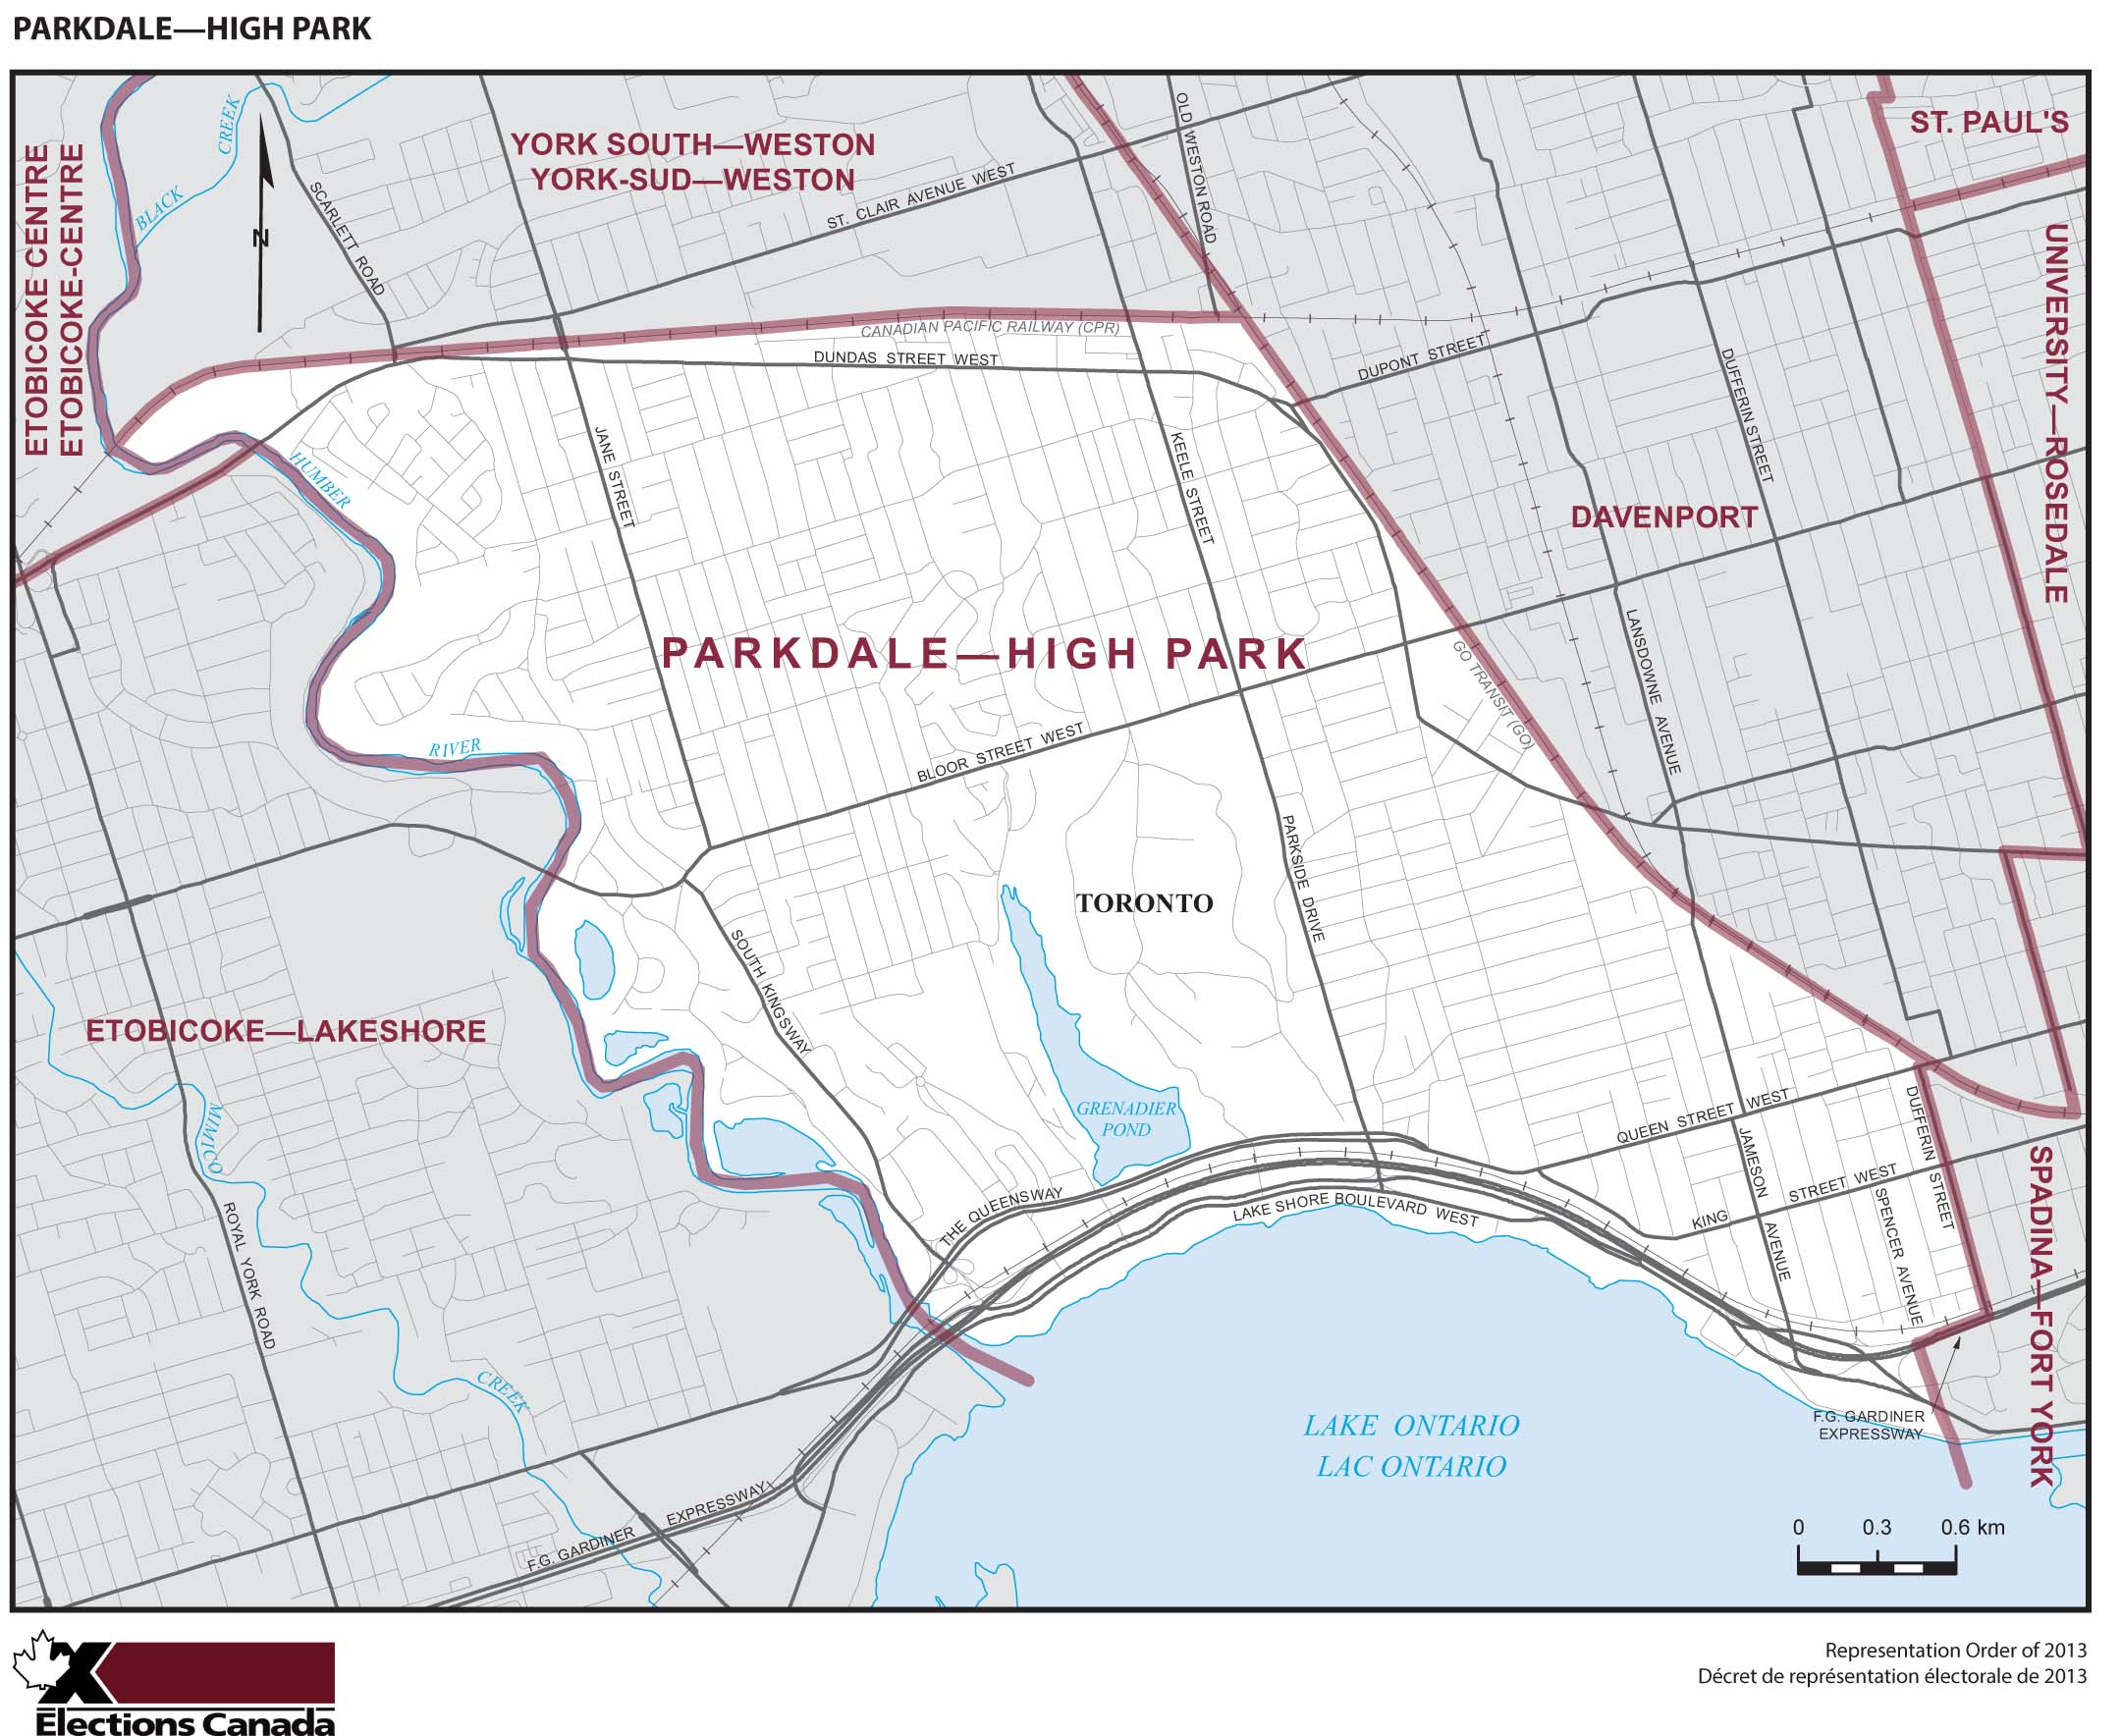 Map: Parkdale--High Park, Federal electoral district, 2013 Representation Order (in white), Ontario